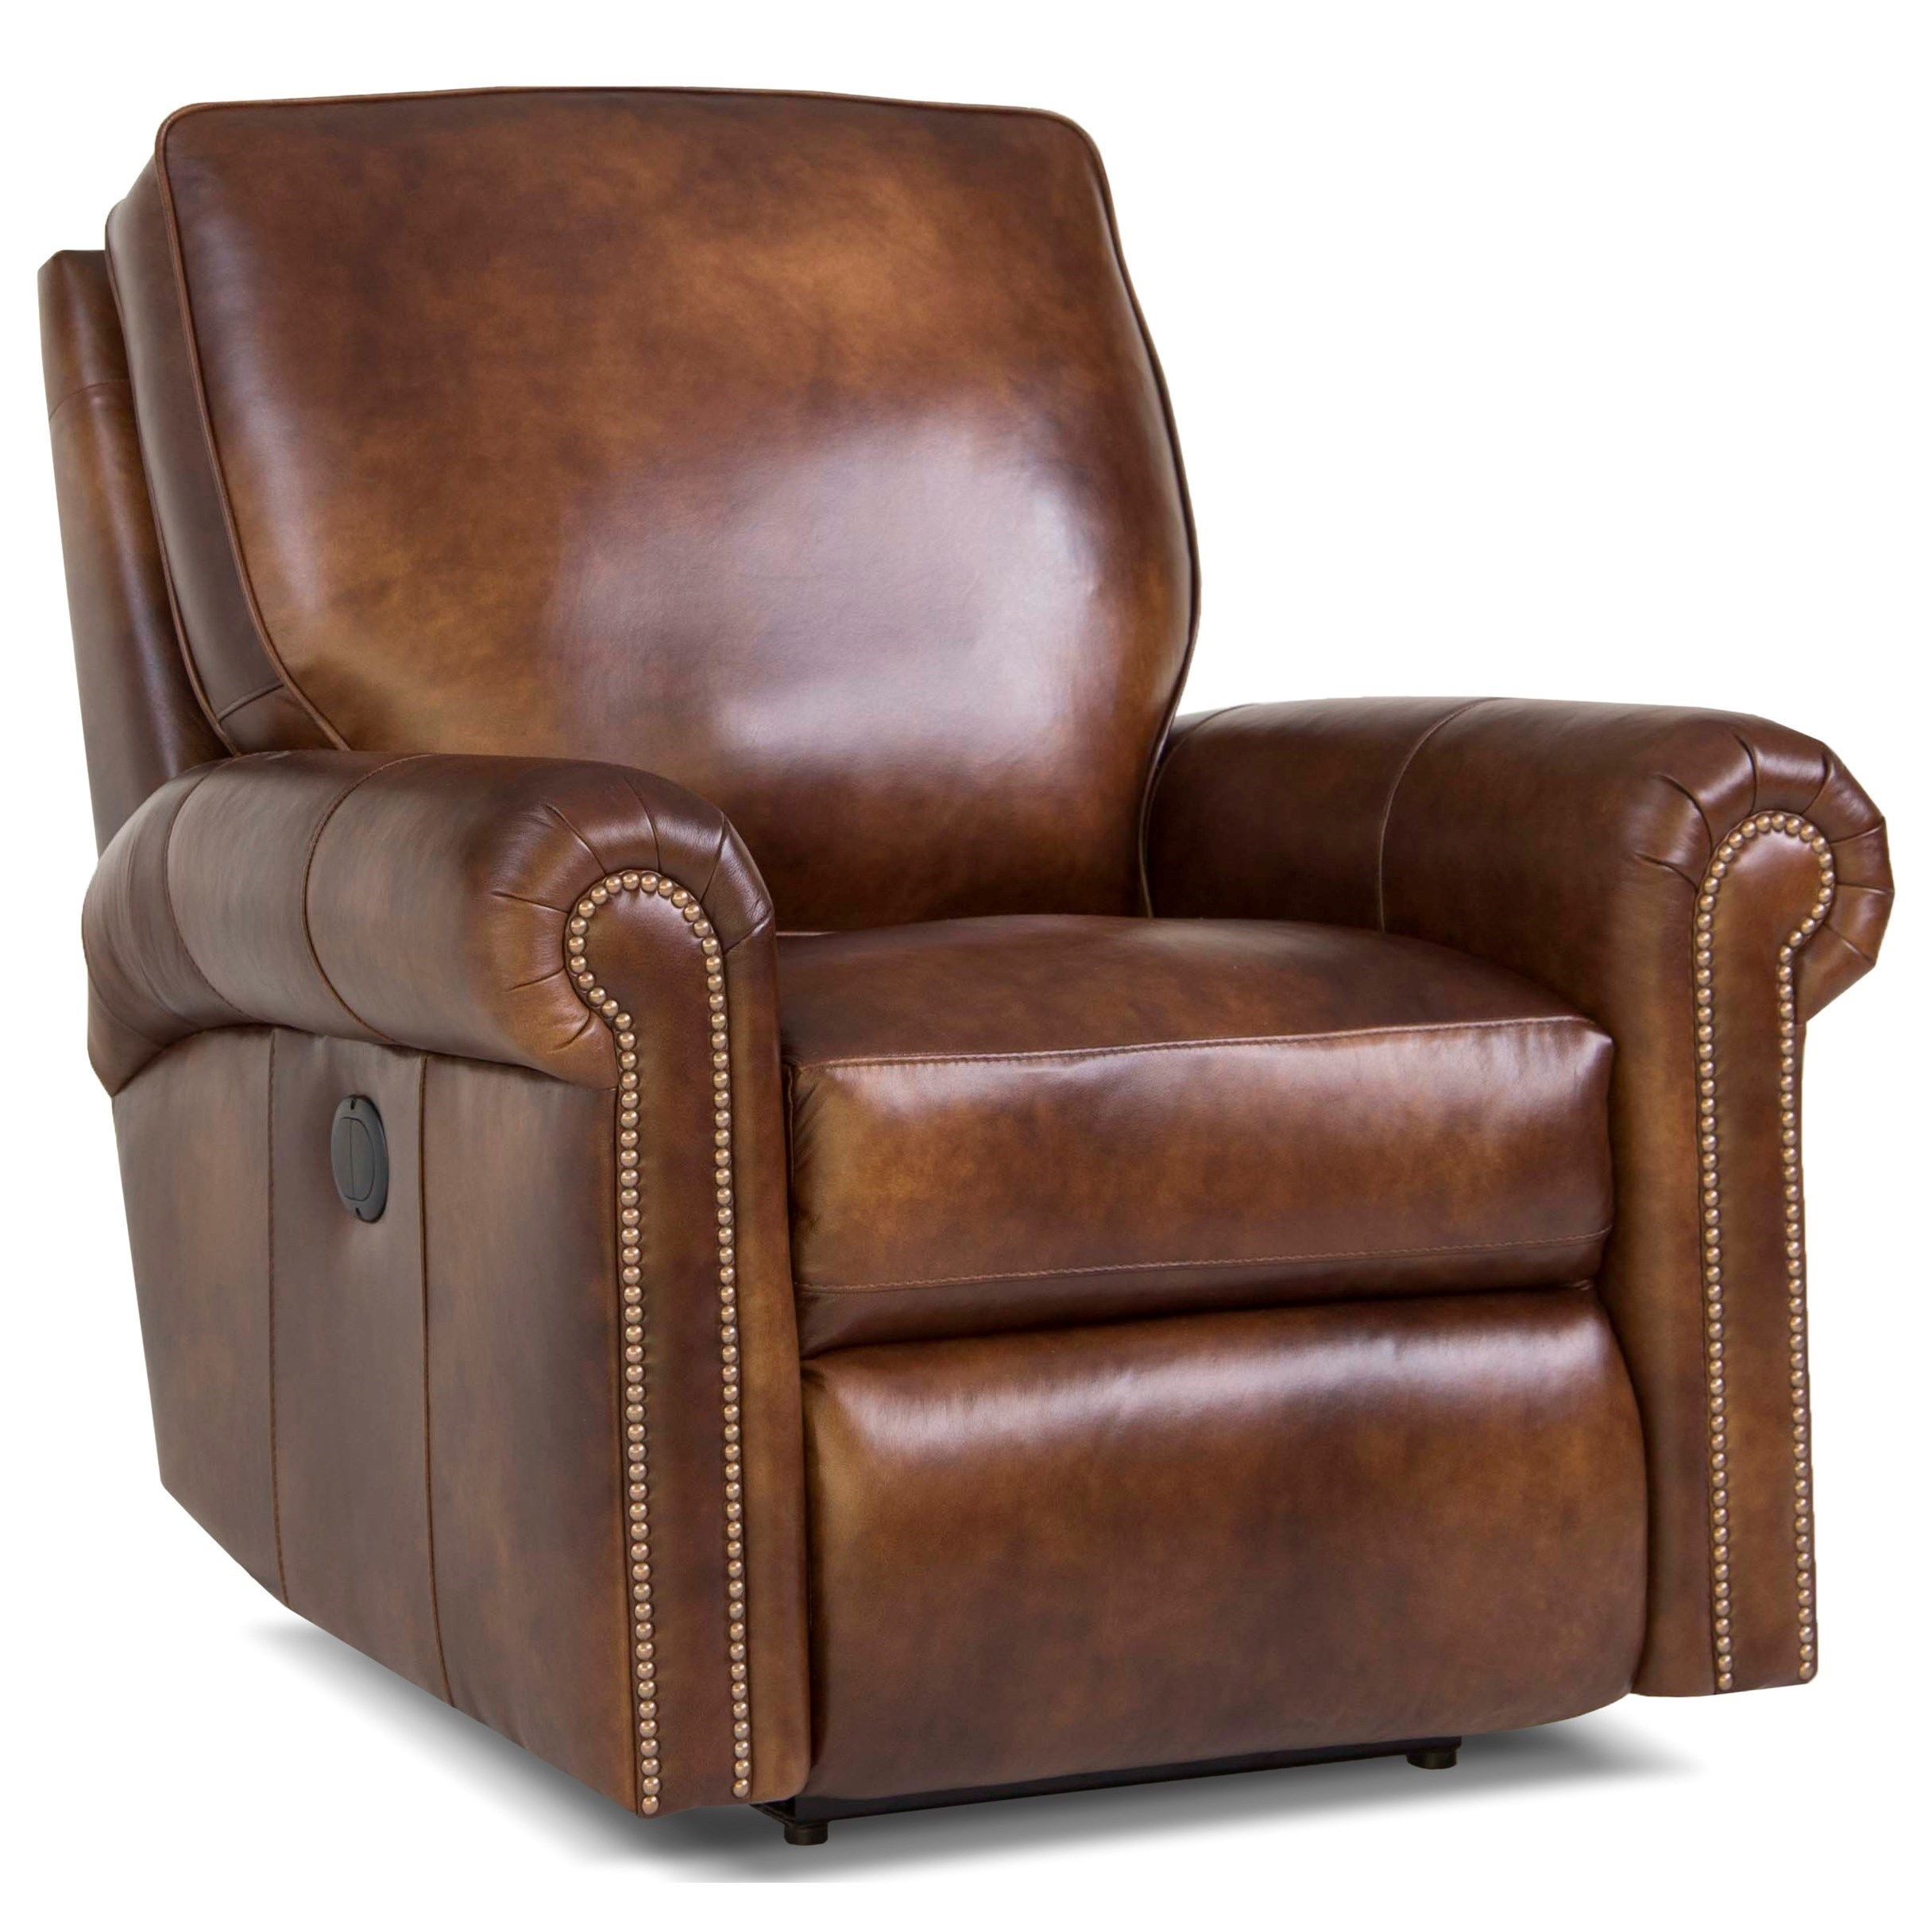 416 Swivel Glider Reclining Chair By Smith Brothers At